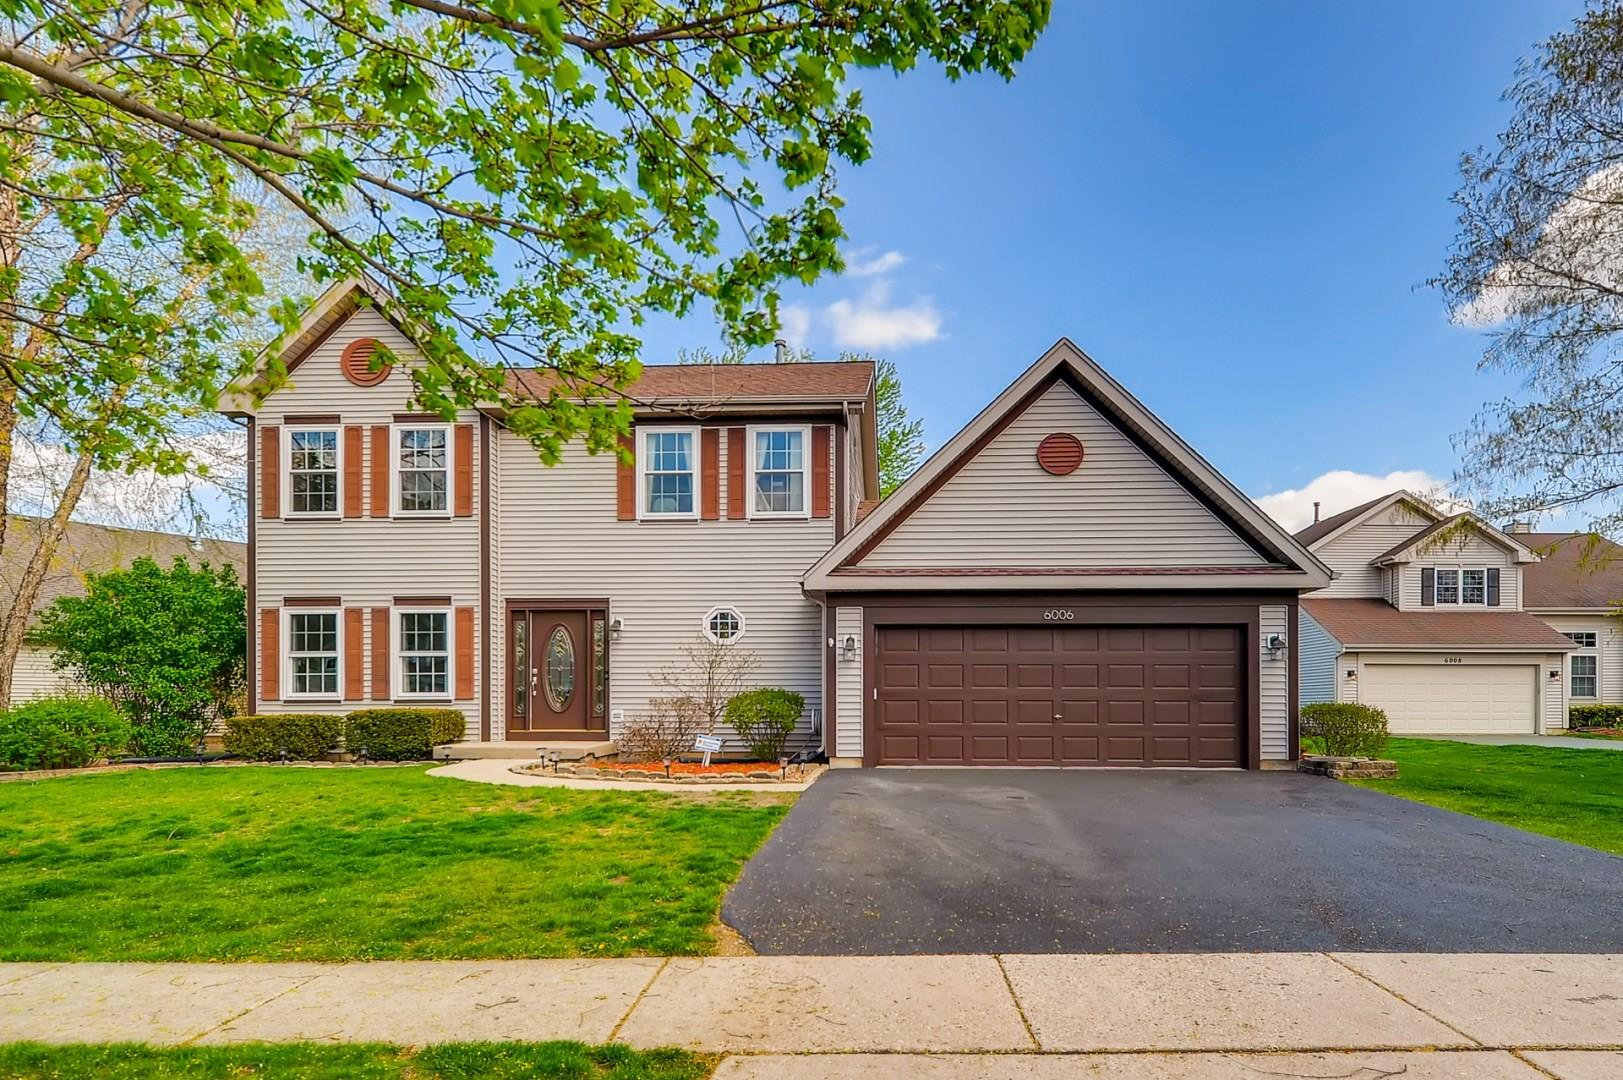 6006 Sanders Court, Carpentersville, IL 60110 - #: 11085628